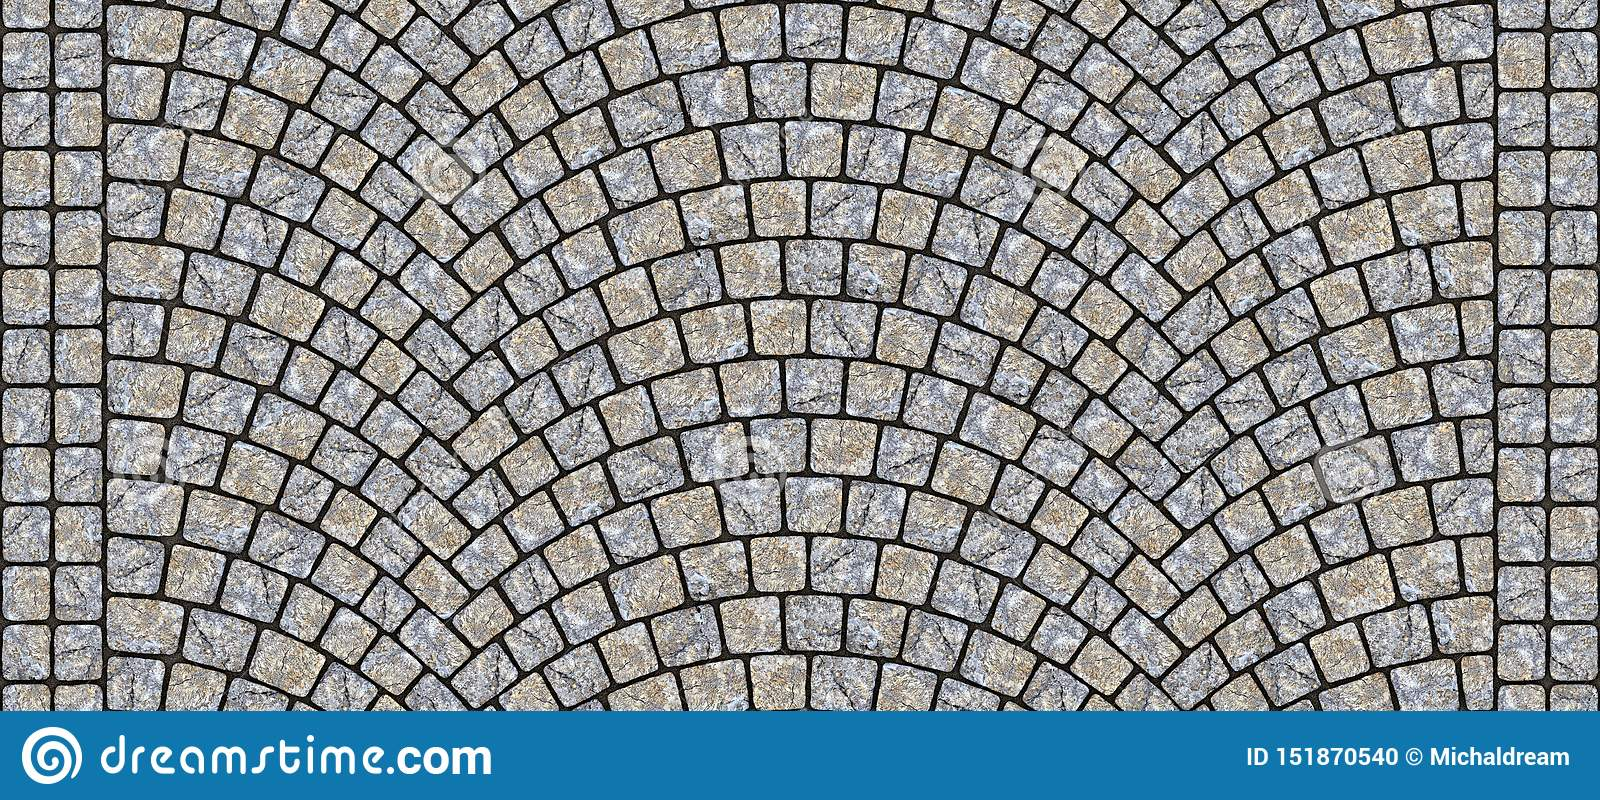 Road curved cobblestone texture 107